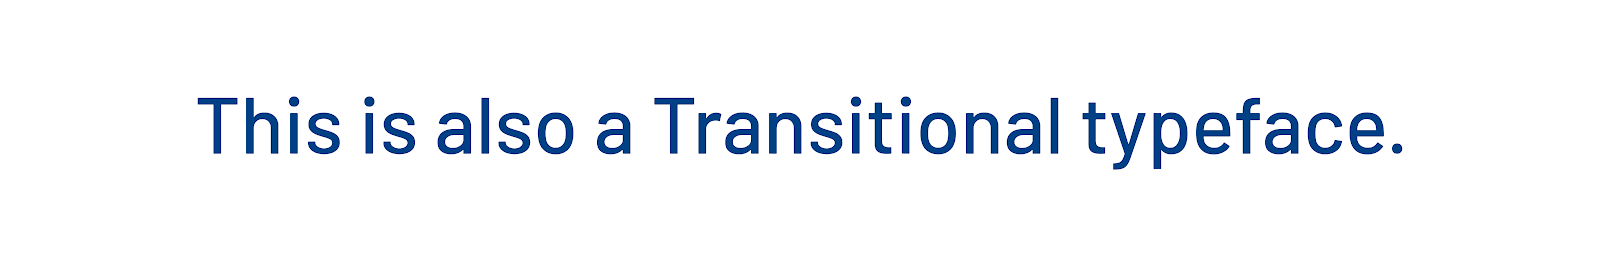 Transitional typeface